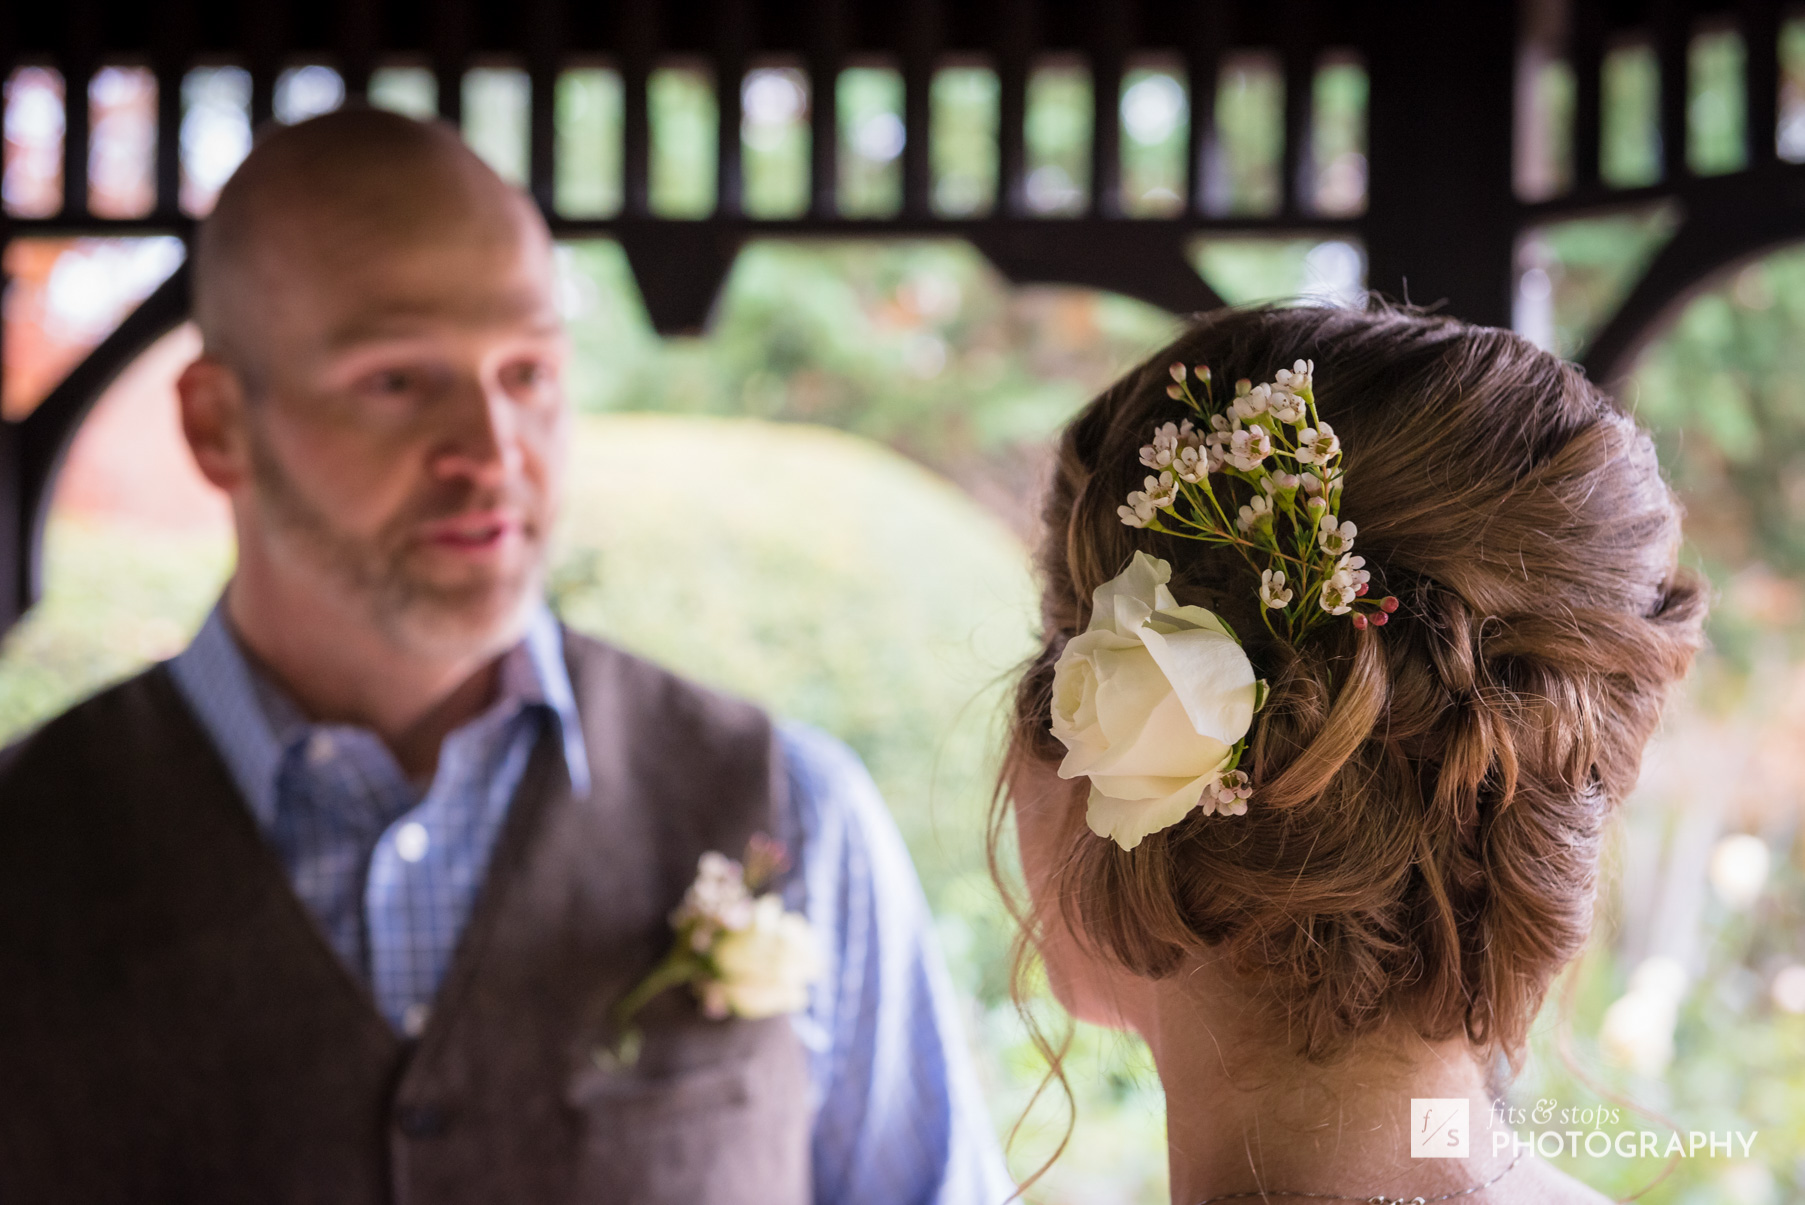 A Caucasian groom looks longingly at his bride during their wedding ceremony in a garden gazebo.